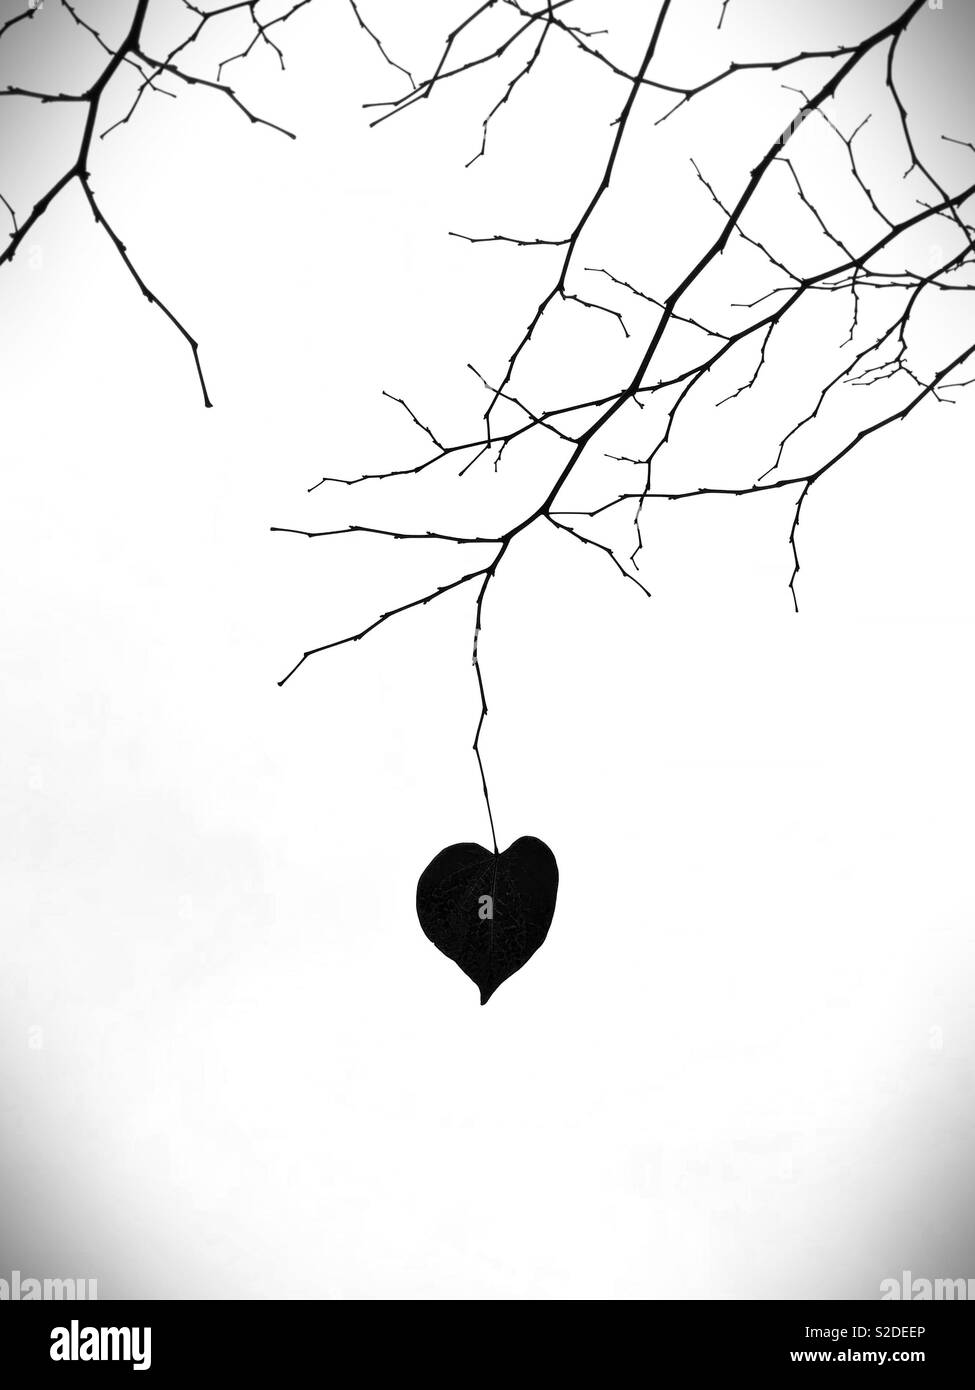 A solitary heart-shaped leaf on a bare branch. - Stock Image